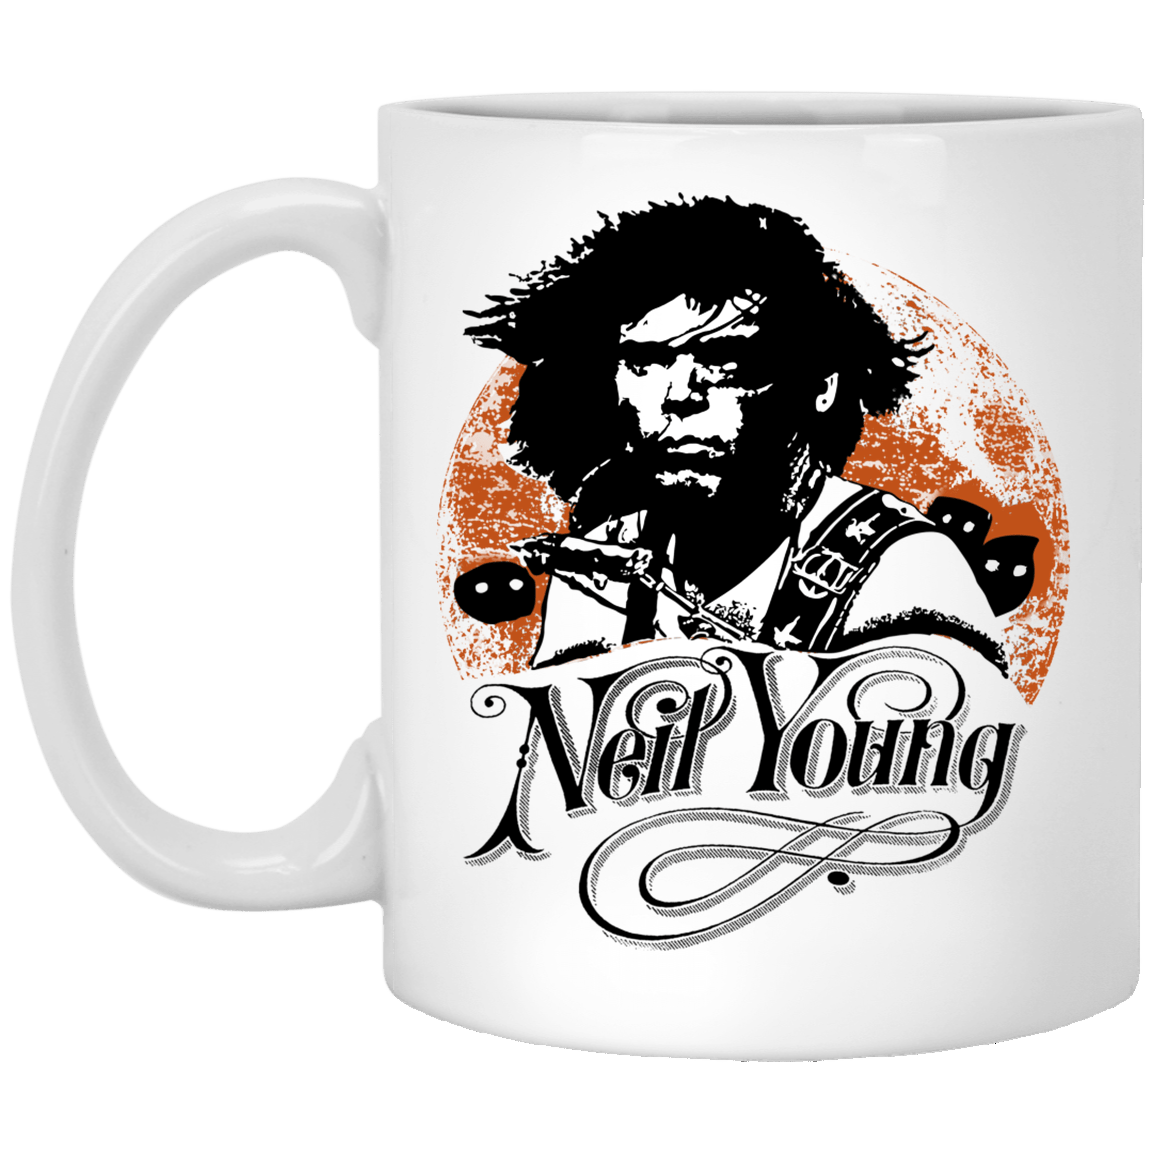 Neil Young Canadian Rocker White Mug 1005-9786-93051349-47417 - Tee Ript